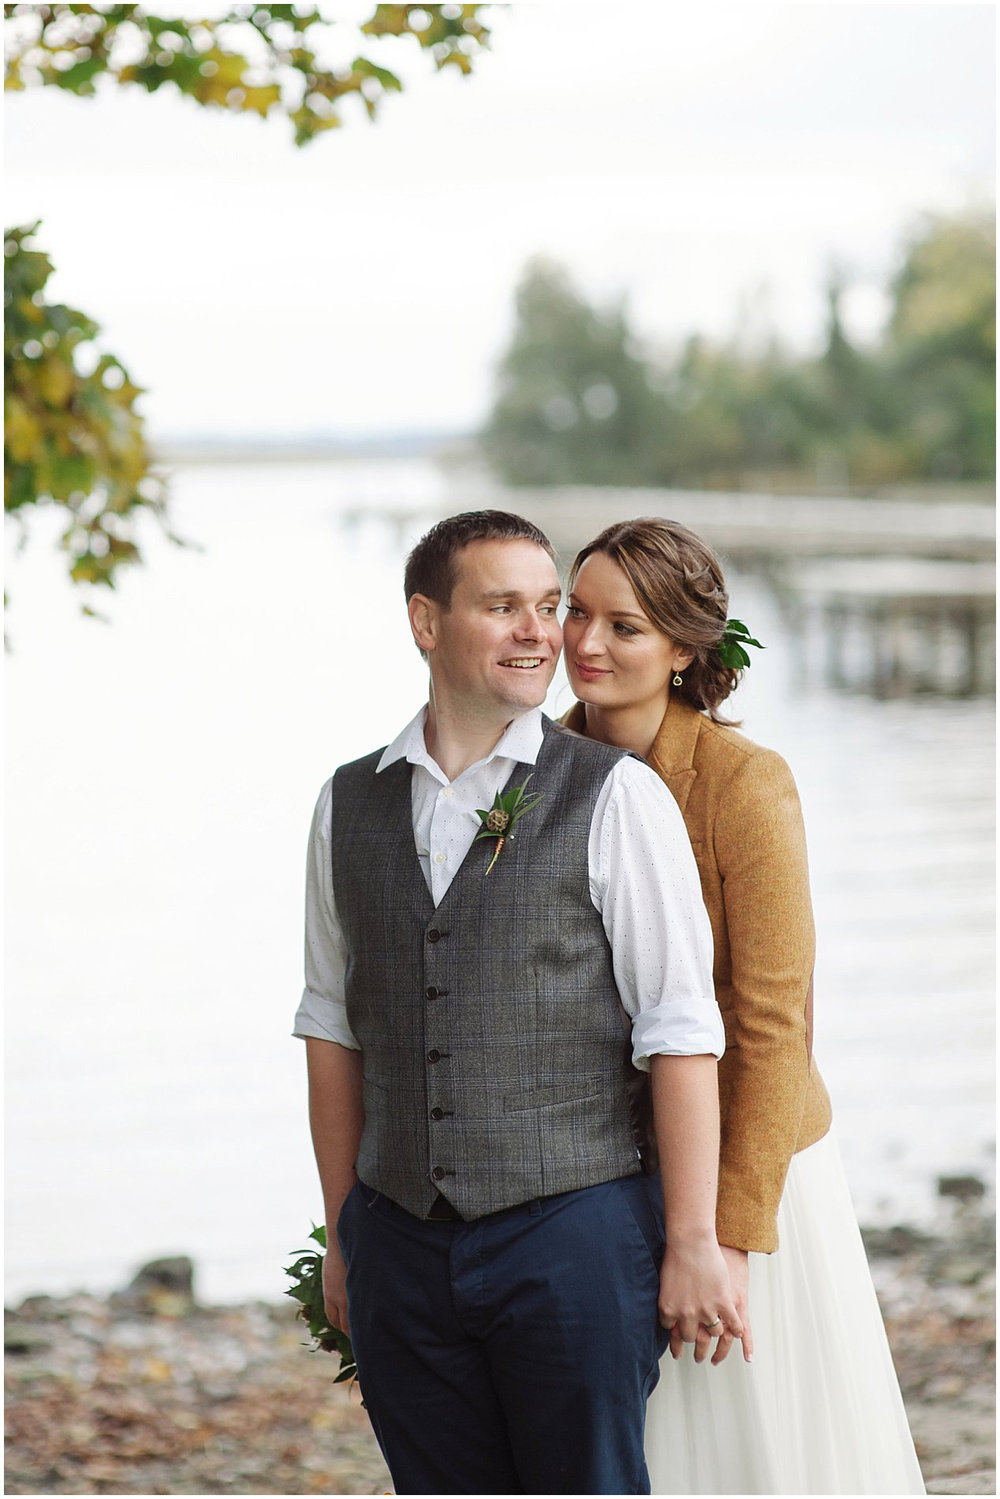 laura_alun_lusty_beg_island_wedding_jude_browne_photography_0100.jpg